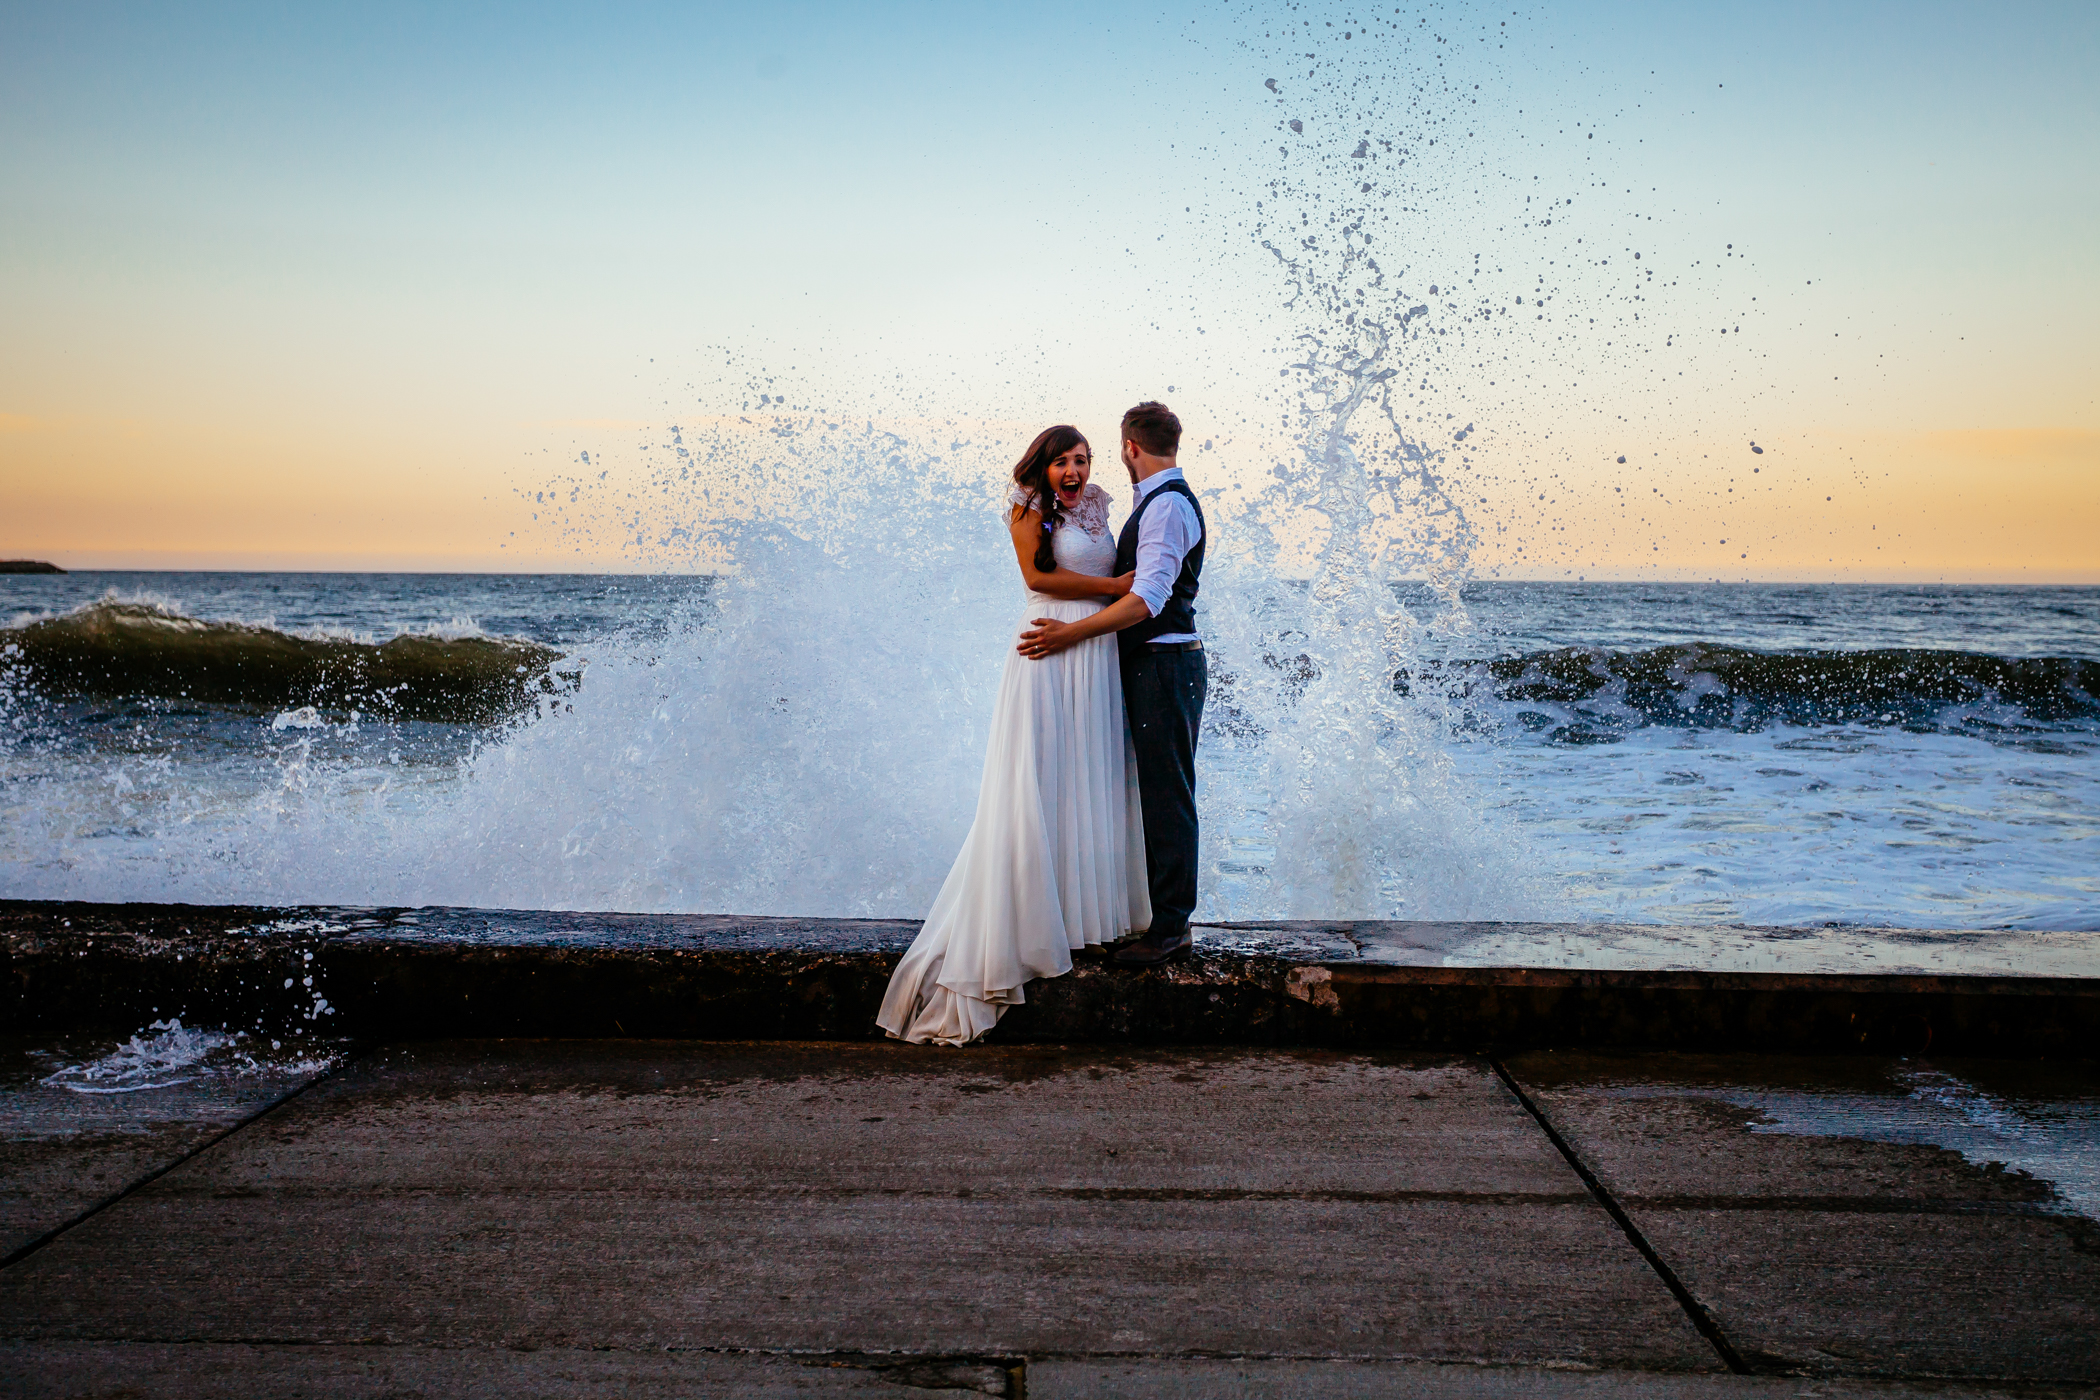 sansom photography beach wedding photography charlotte & mike-68